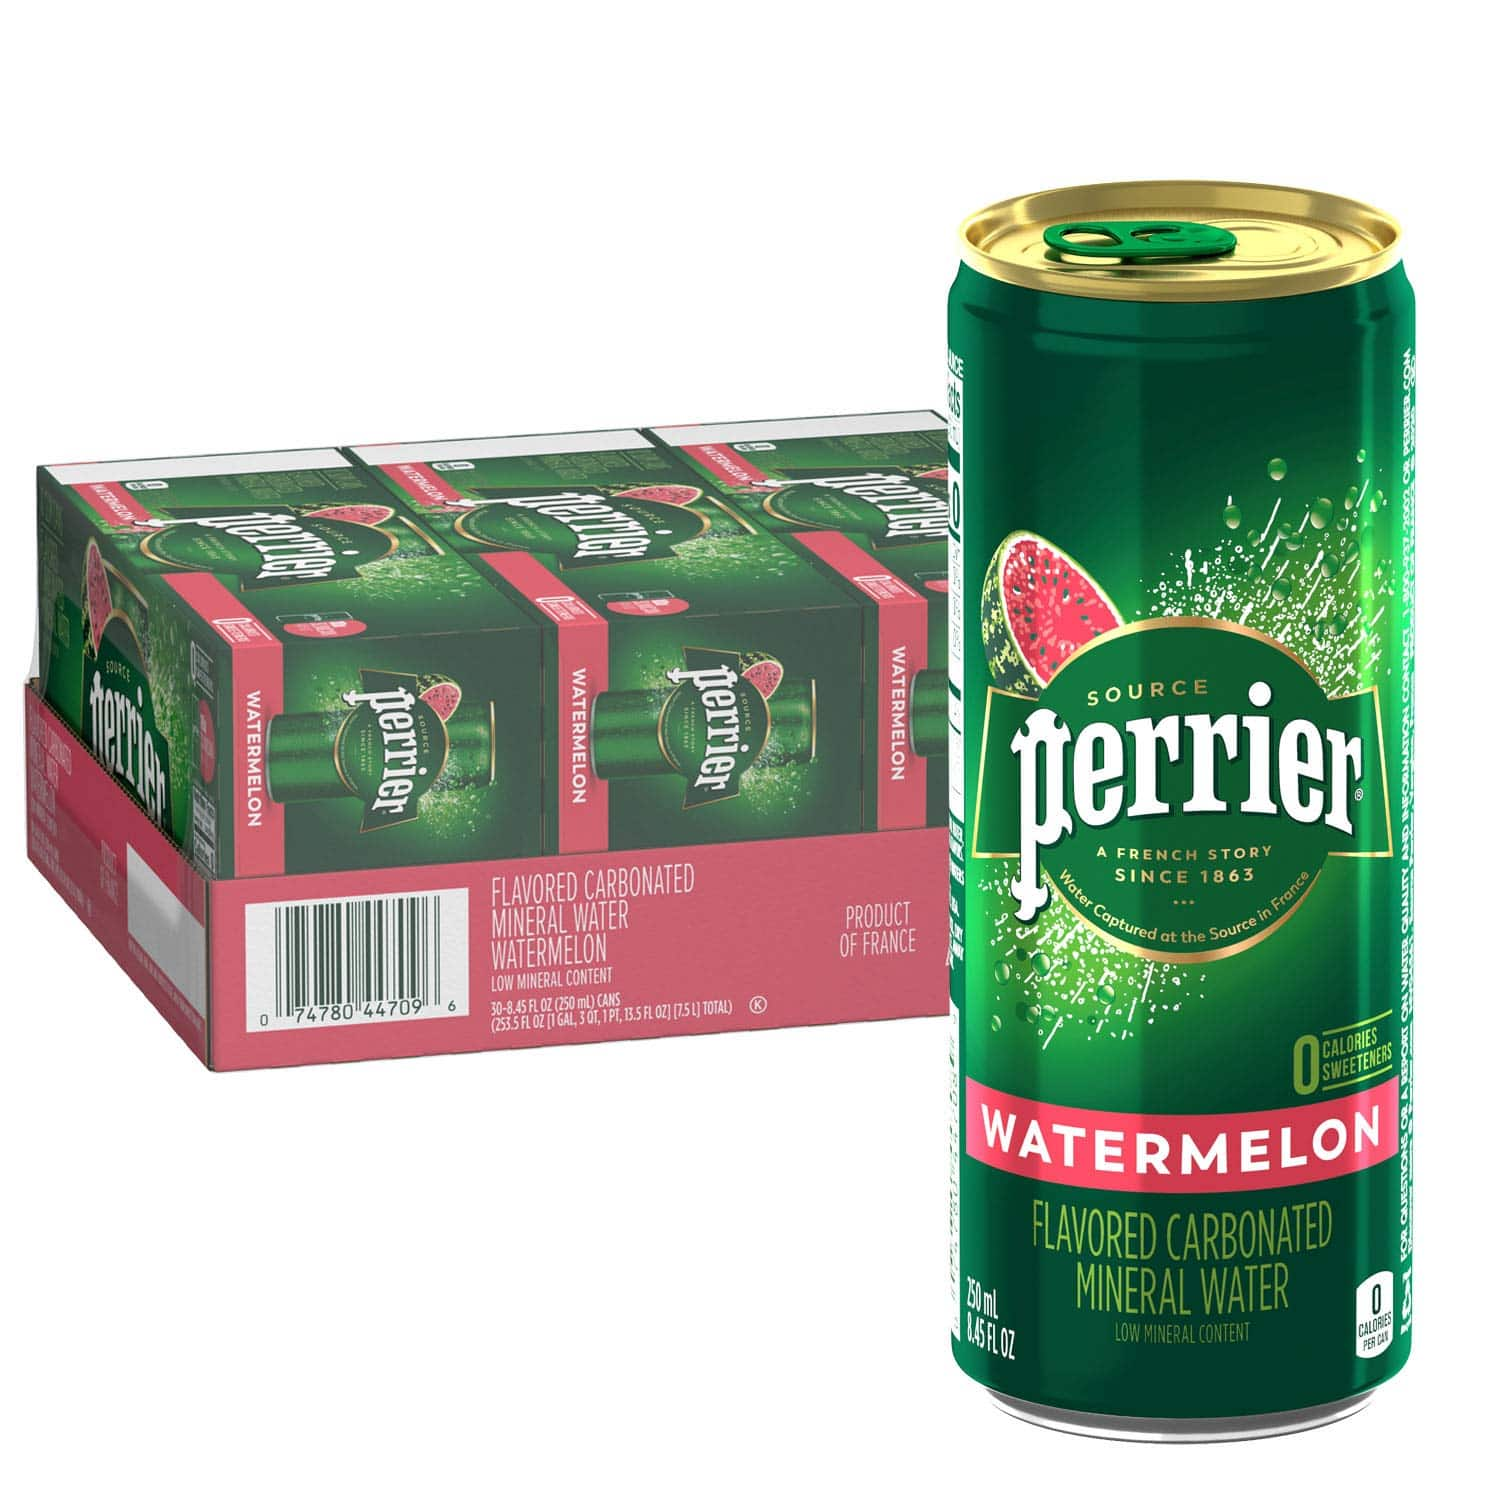 Perrier 30 pack slim cans Watermelon flavor $12.06 FS w/Prime at Amazon $12.06